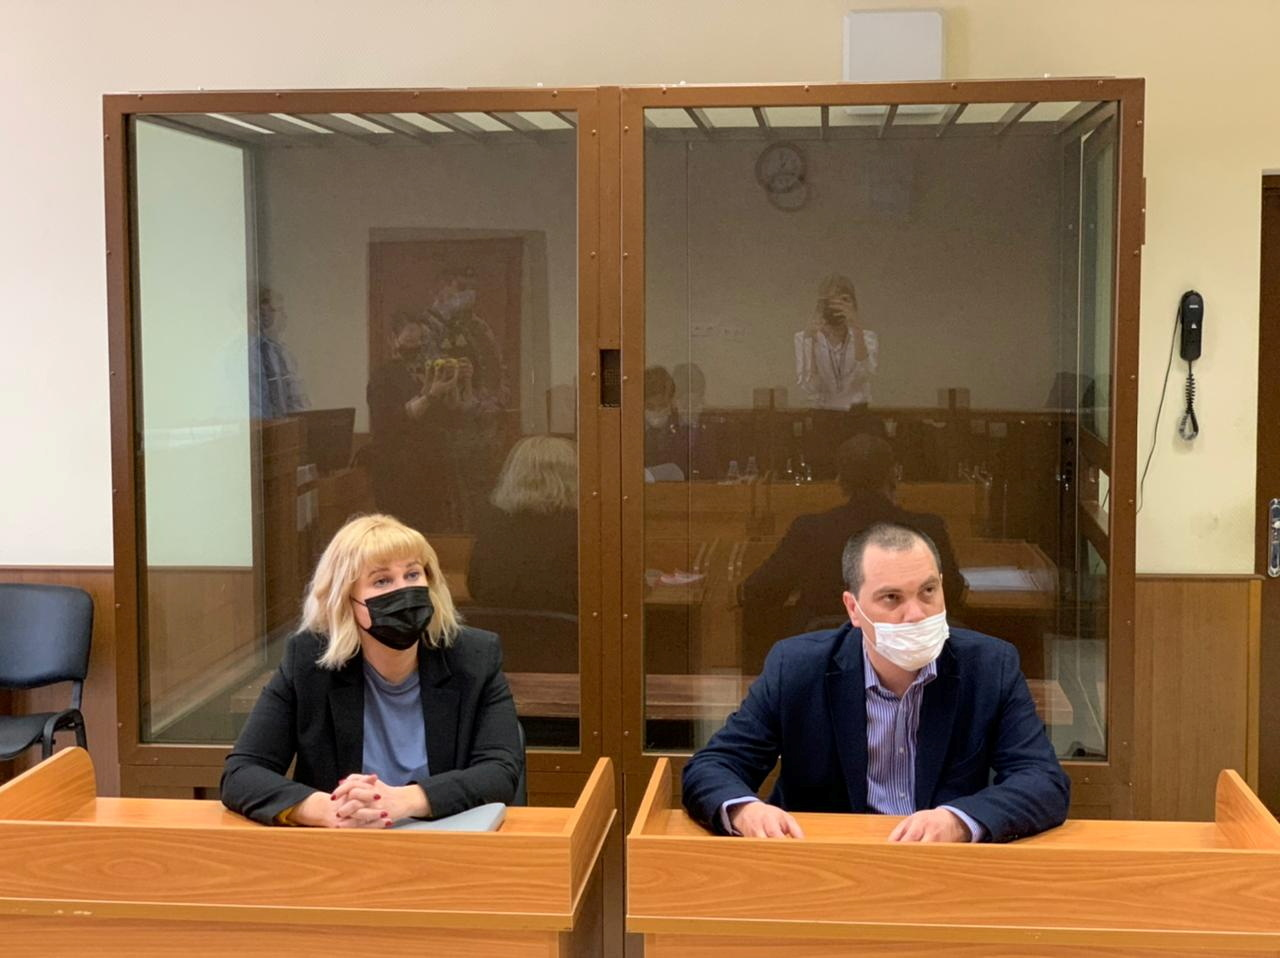 Olga Mikhailova and Vadim Kobzev, lawyers of Russian opposition leader Alexei Navalny, are seen in a courtroom before a hearing to consider an appeal against an earlier court decision that found Navalny guilty of slandering a Russian World War Two veteran, in Moscow, Russia April 29, 2021. Press Service of Babushkinsky District Court of Moscow/Handout via REUTERS